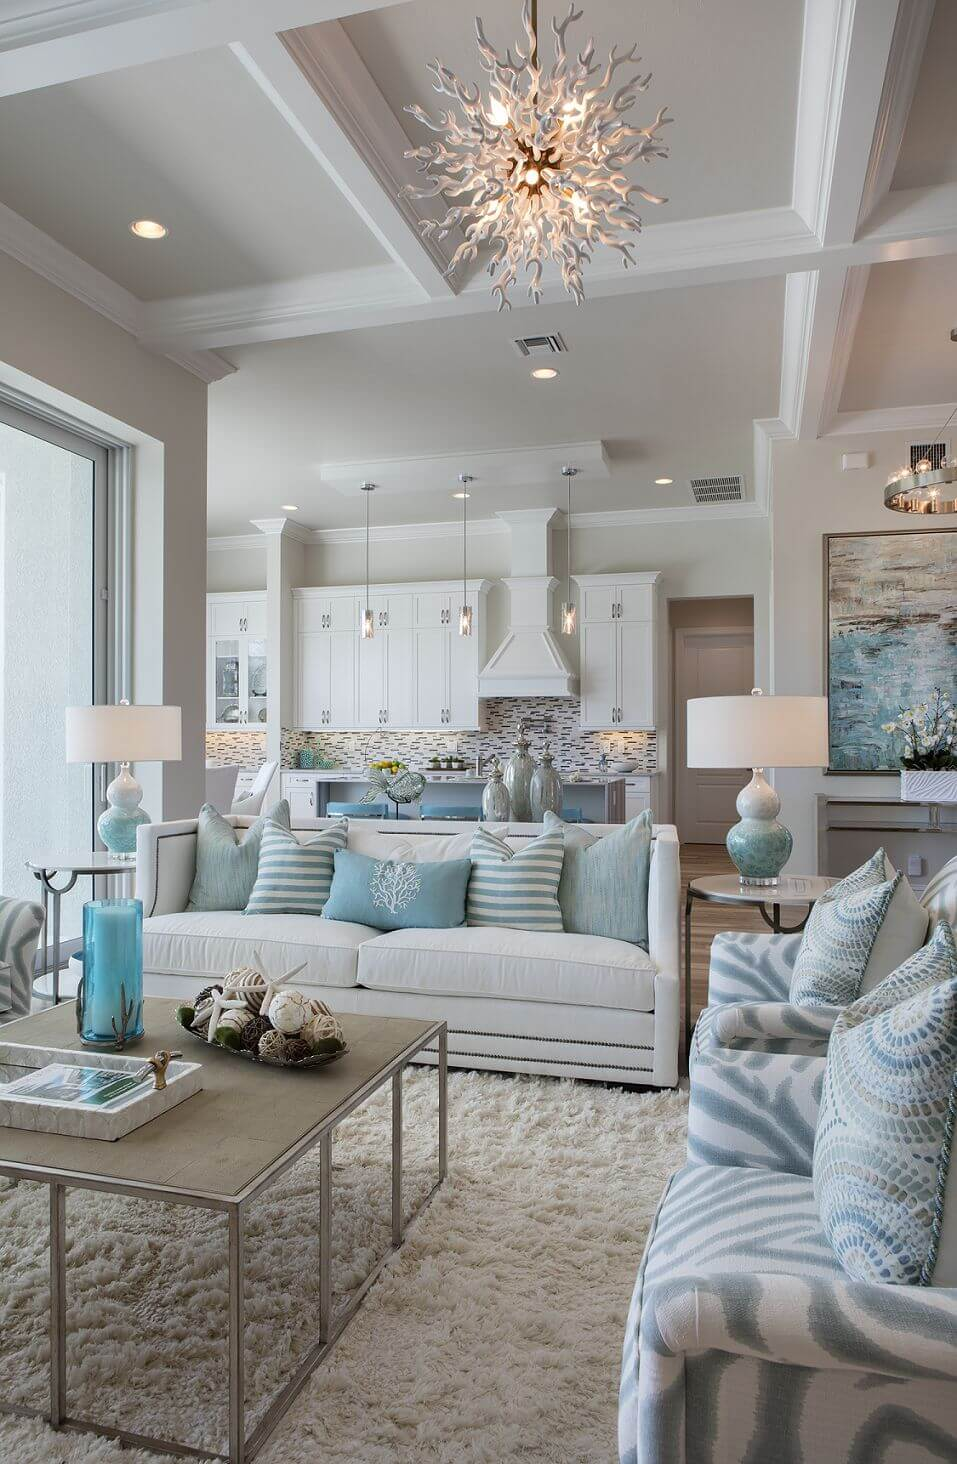 Beach Inspired Living Space with Coral Lighting